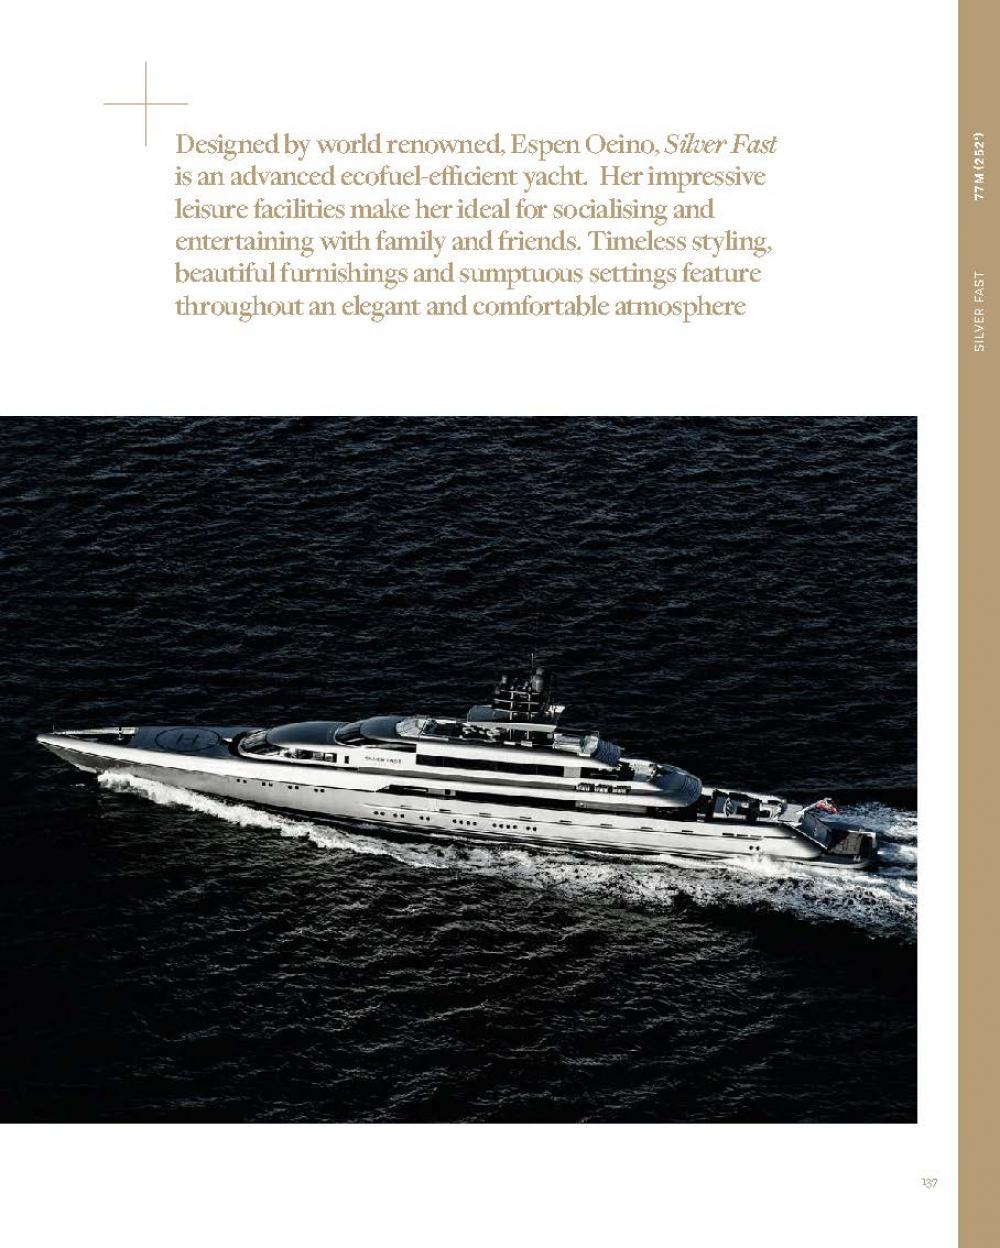 ISSUE 37 - SEA+I - Page 139 | C&N